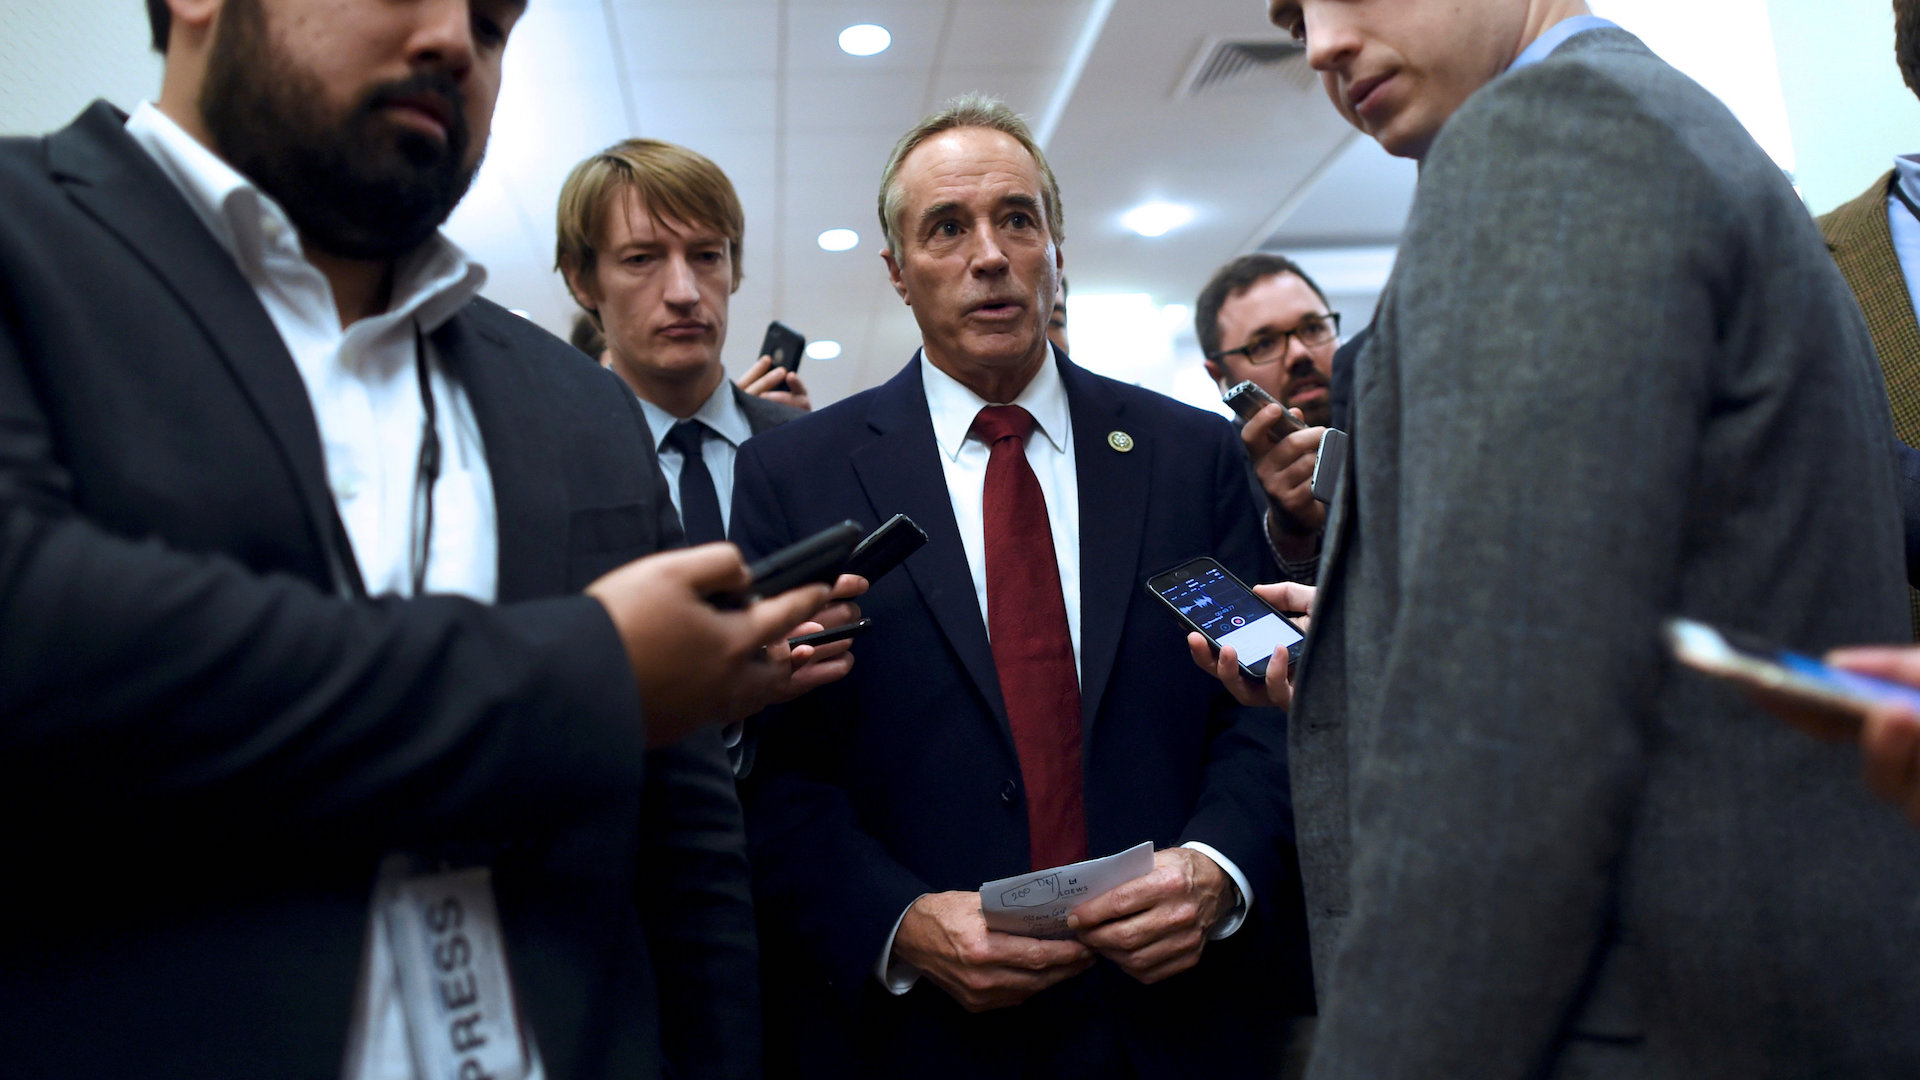 Rep. Chris Collins charged with insider trading, federal prosecutors announce